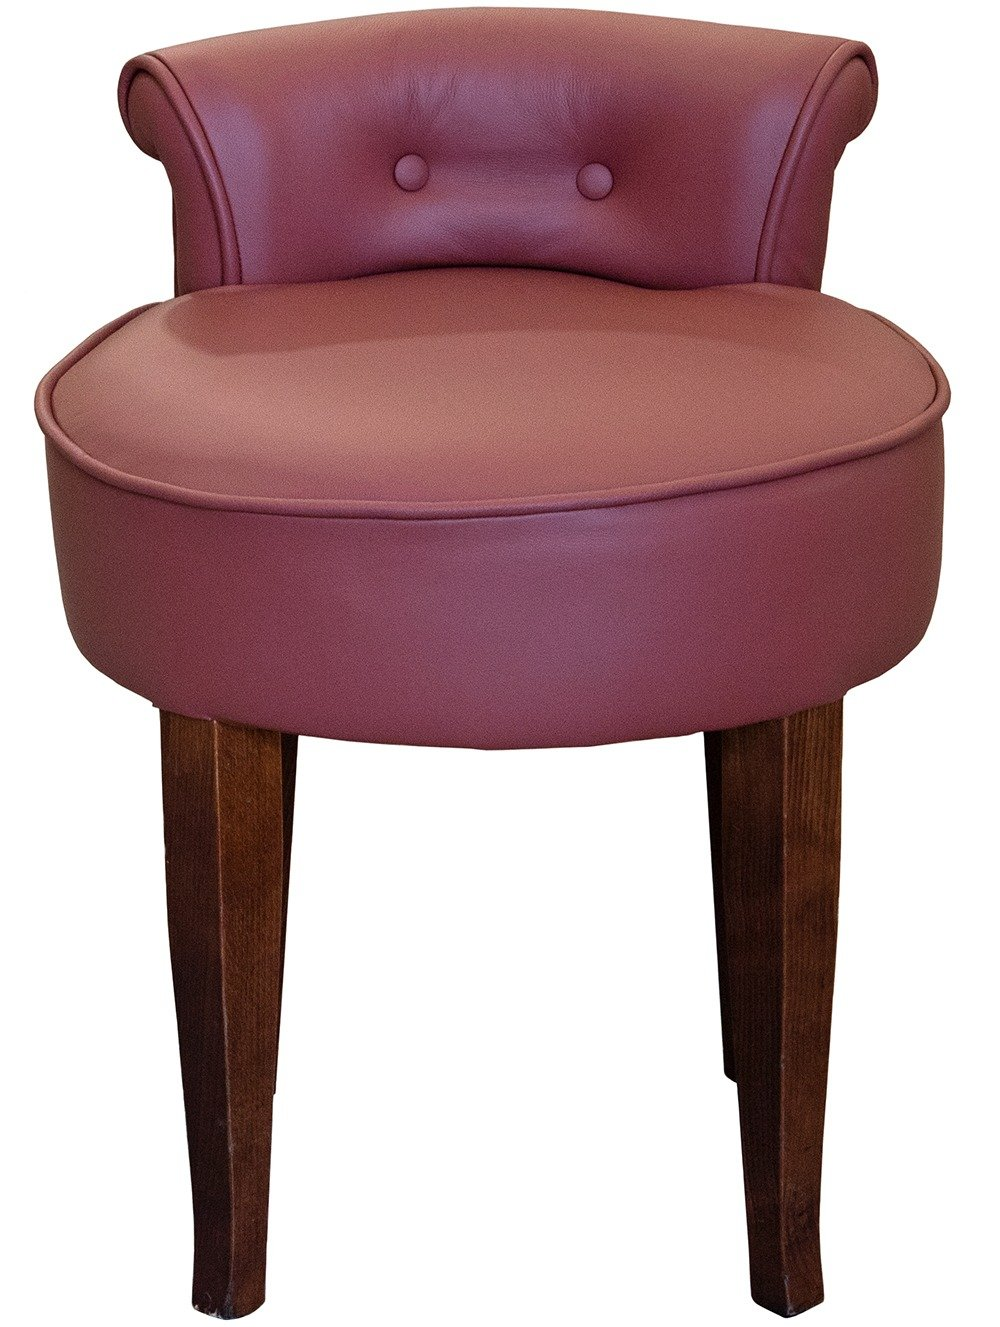 Front view of the Chloe Low Stool